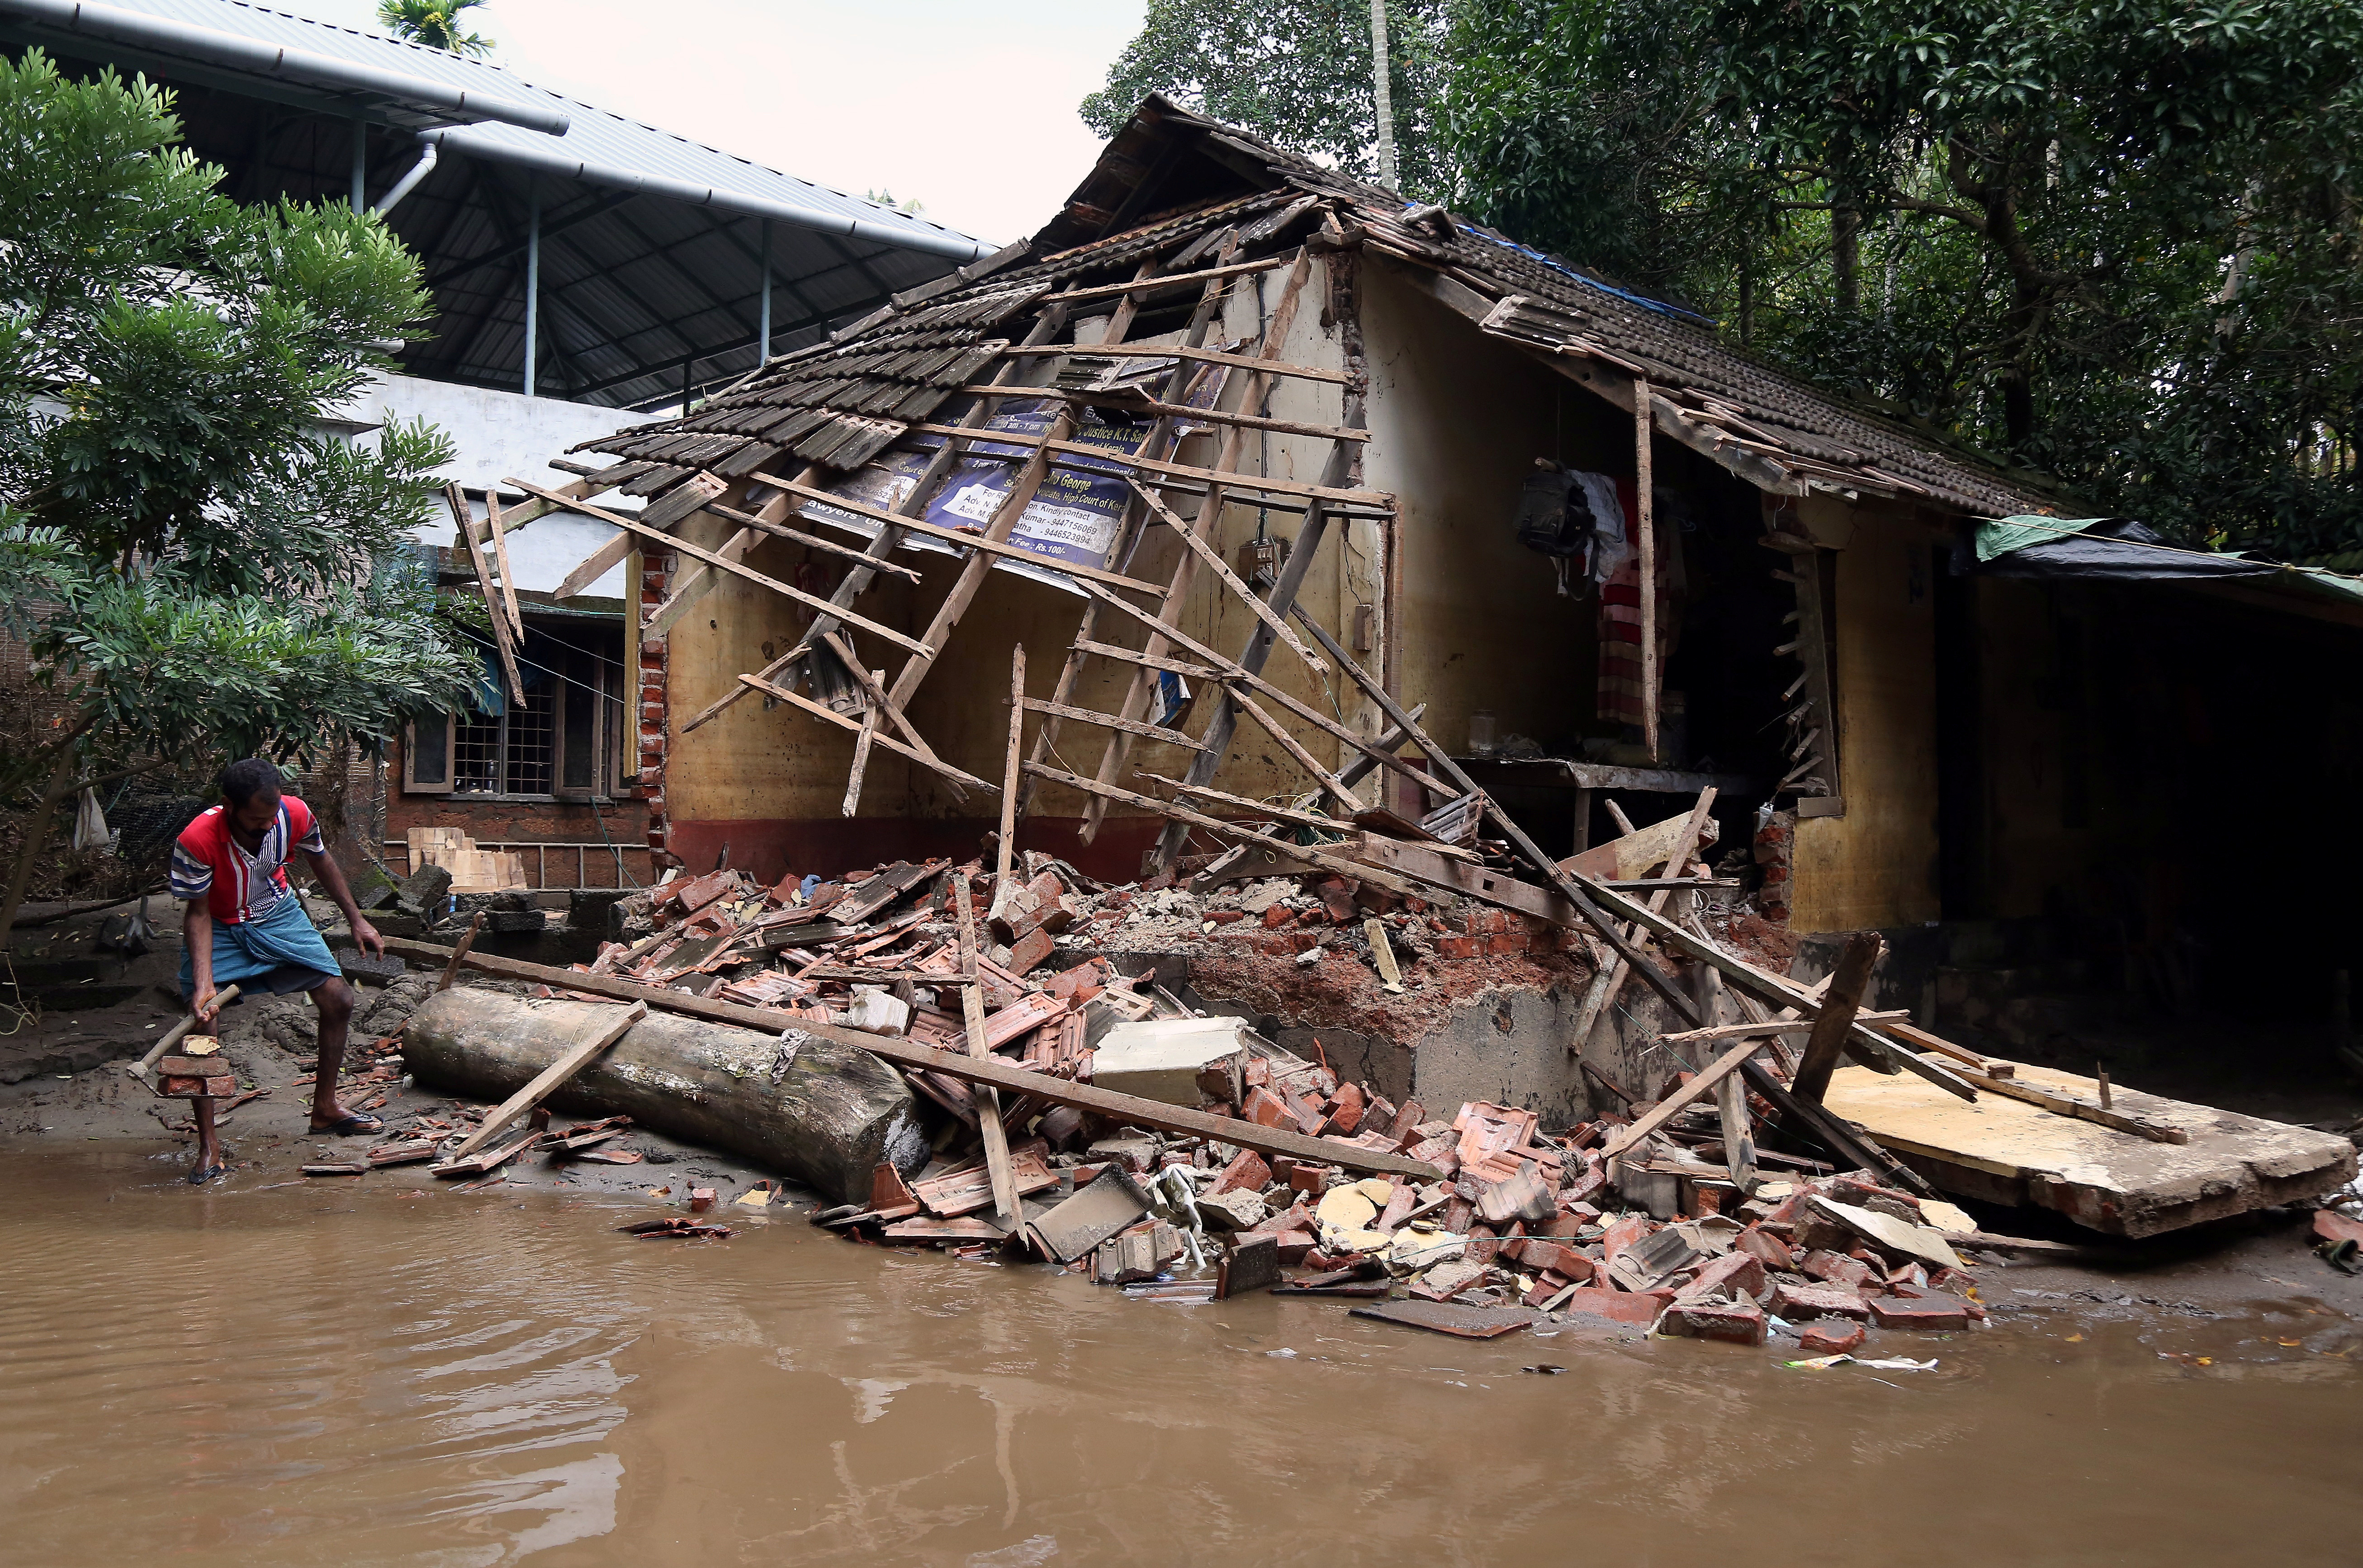 A man removes debris from a collapsed house after the August 2018 floods in Kerala.